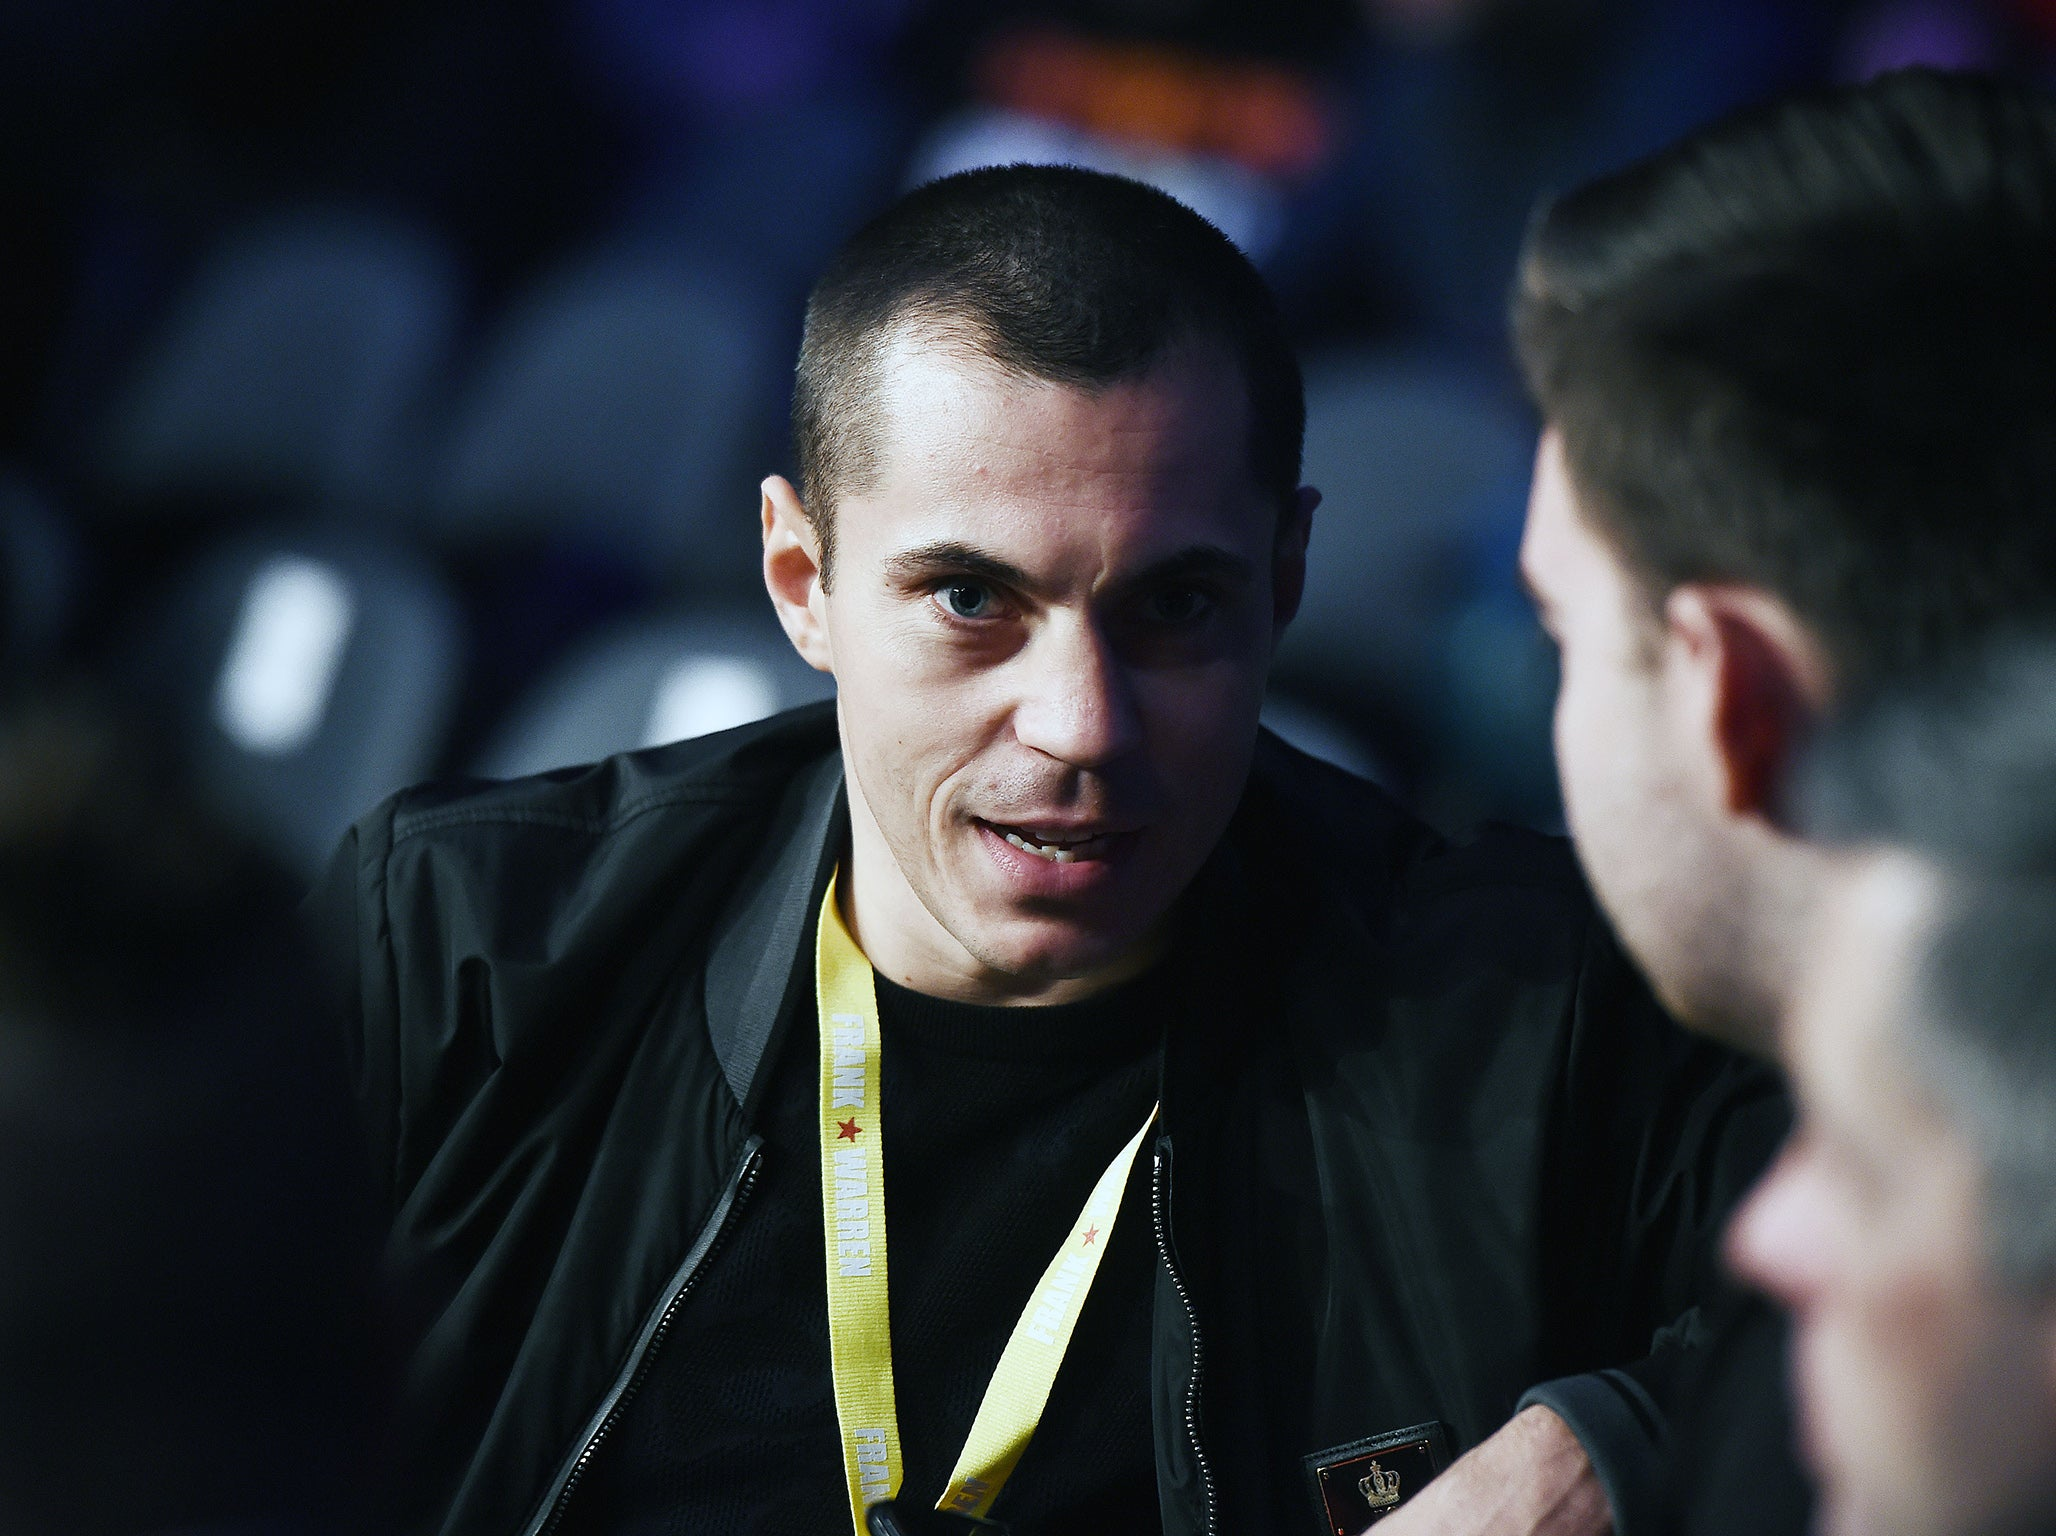 Scott Quigg may have lost his title shot against Oscar Valdez but there is still so much on the line